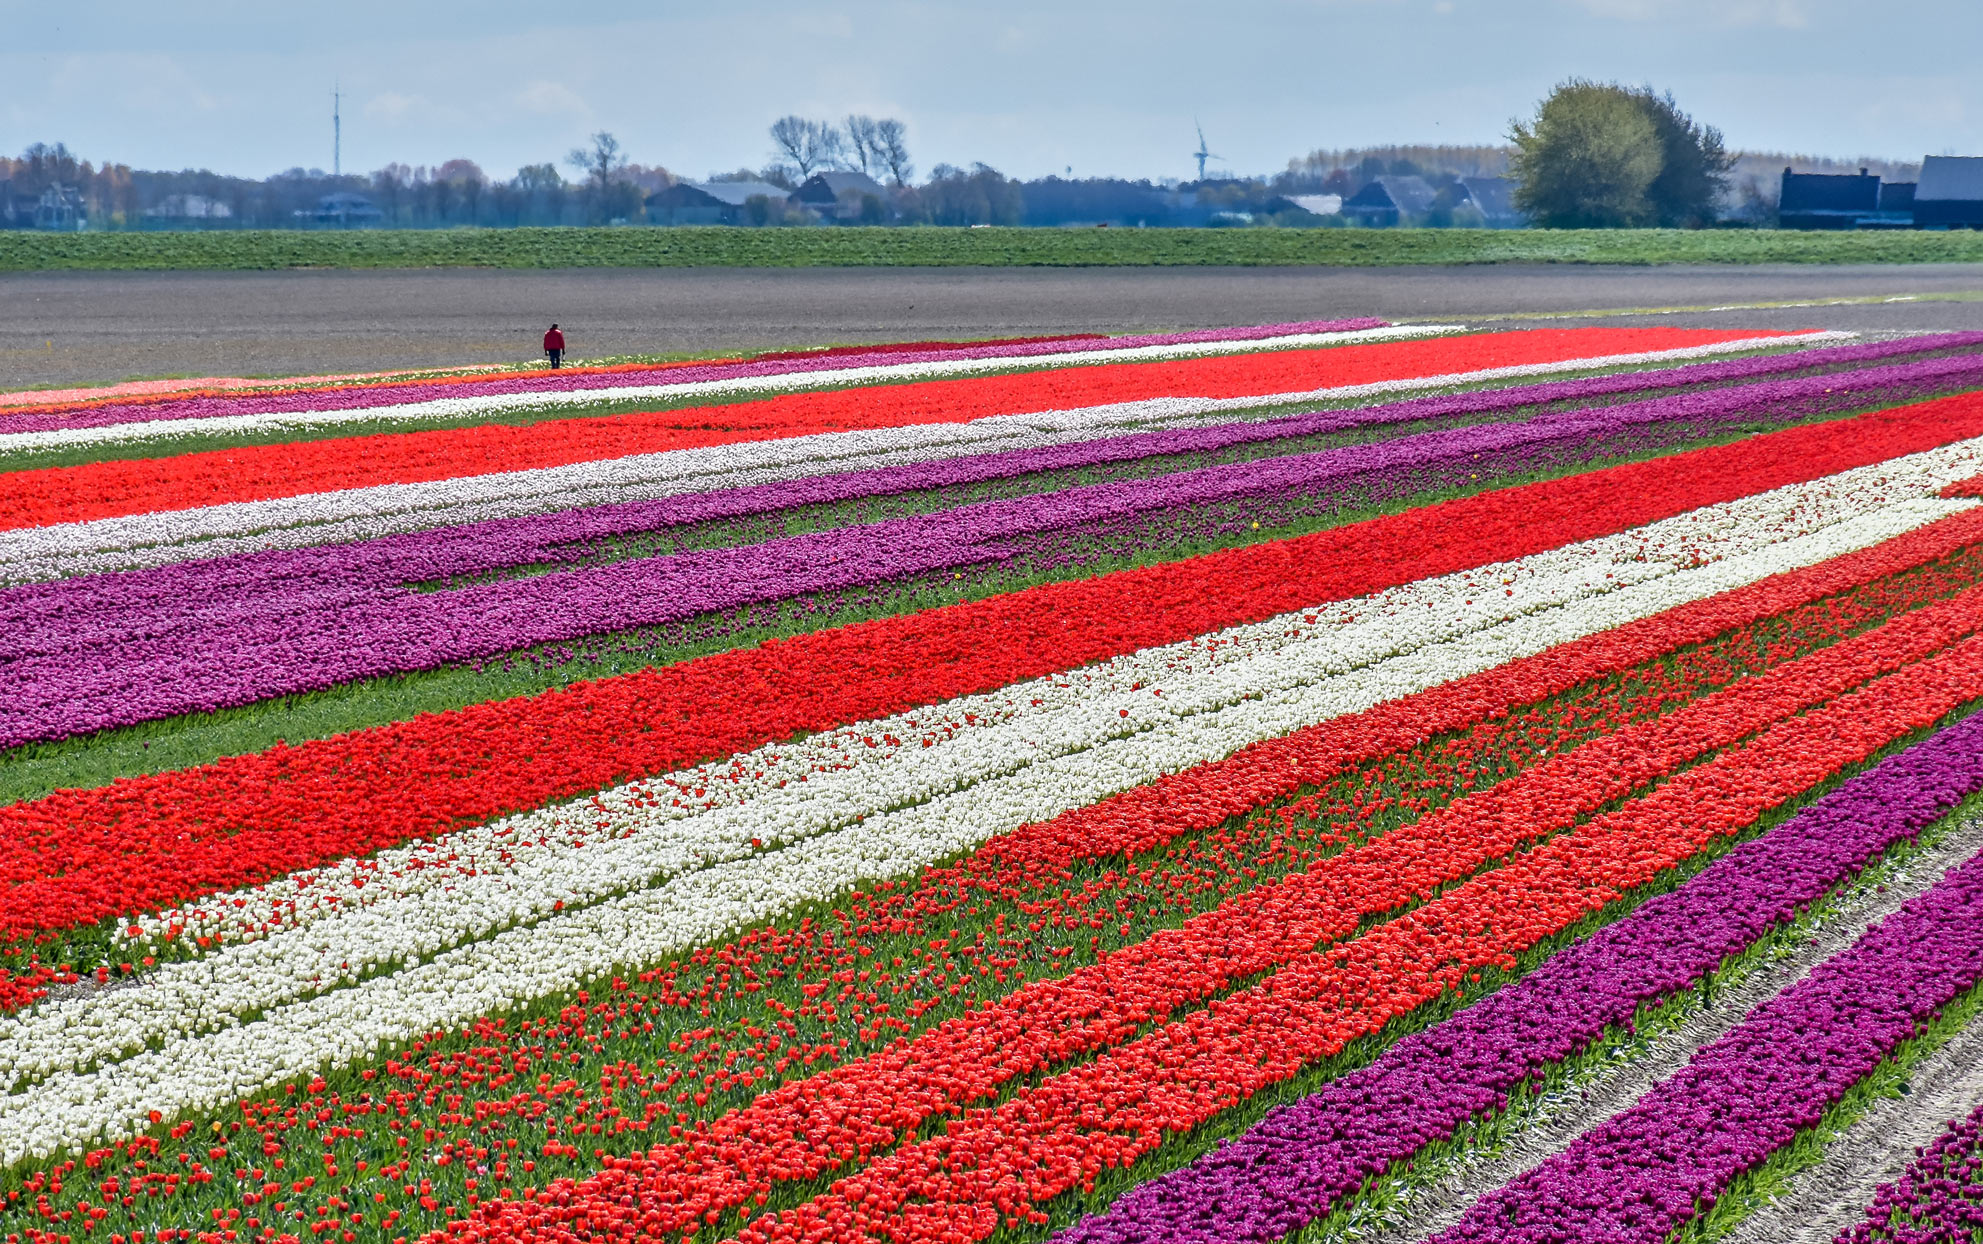 National Tulip Day Just Kicked Off the Growing Season in the Netherlands